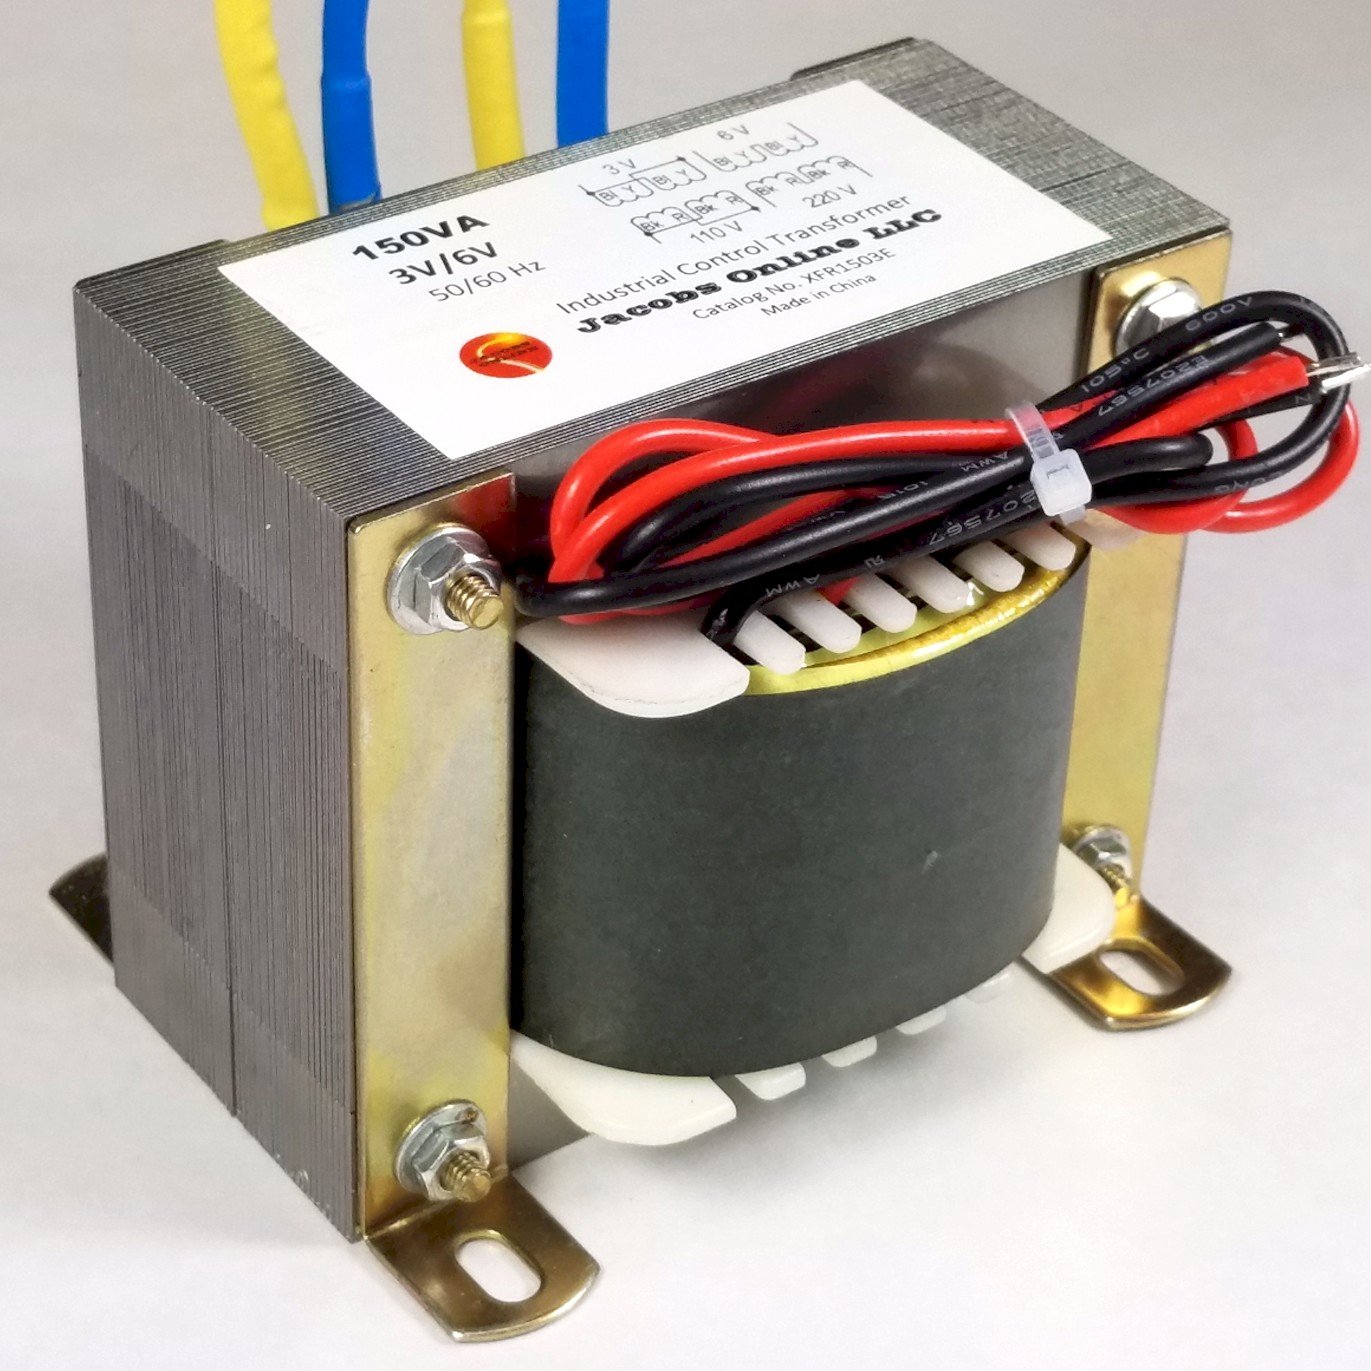 Buy Transformers 24 Volt Power Supply 30 Amp Single Output Catalog Xfr1503e